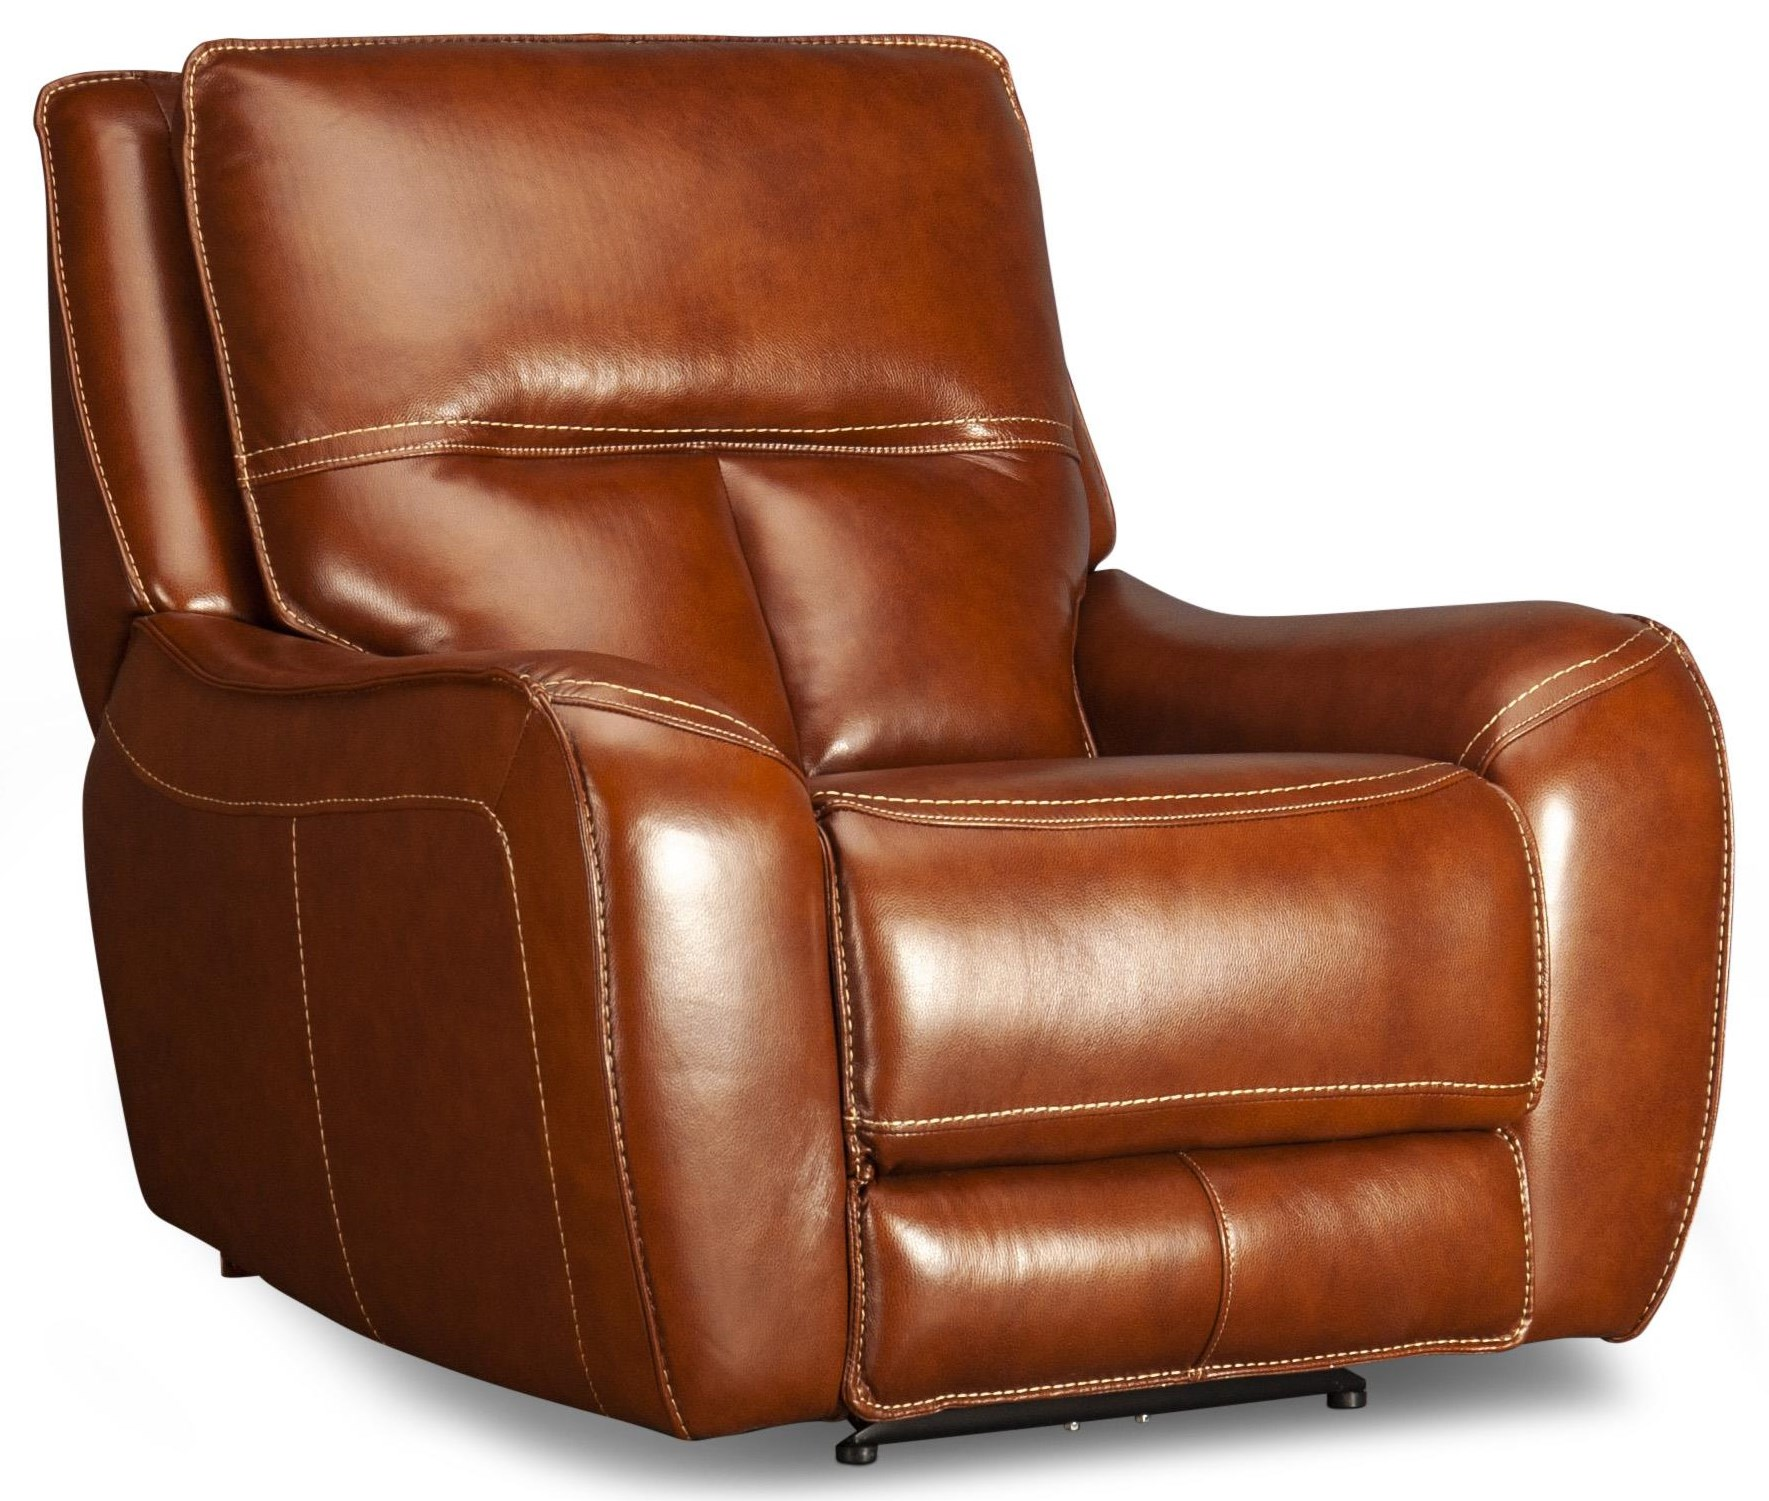 Cora Cora Leather Match Power Recliner at Morris Home